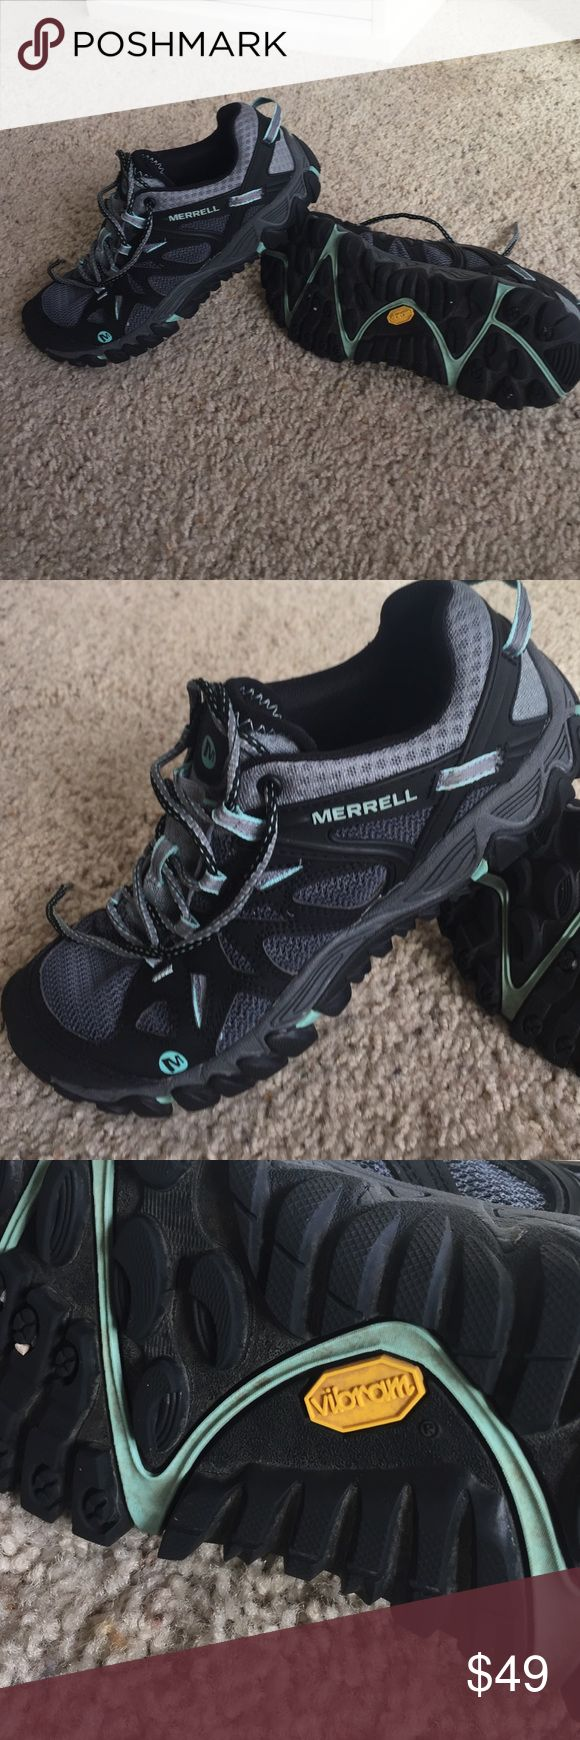 Merrill Shoes Black Adventure Merrell hiking trail shoe with Vibram sole excellent condition black/dark gray / teal green detail Merrell Shoes Athletic Shoes